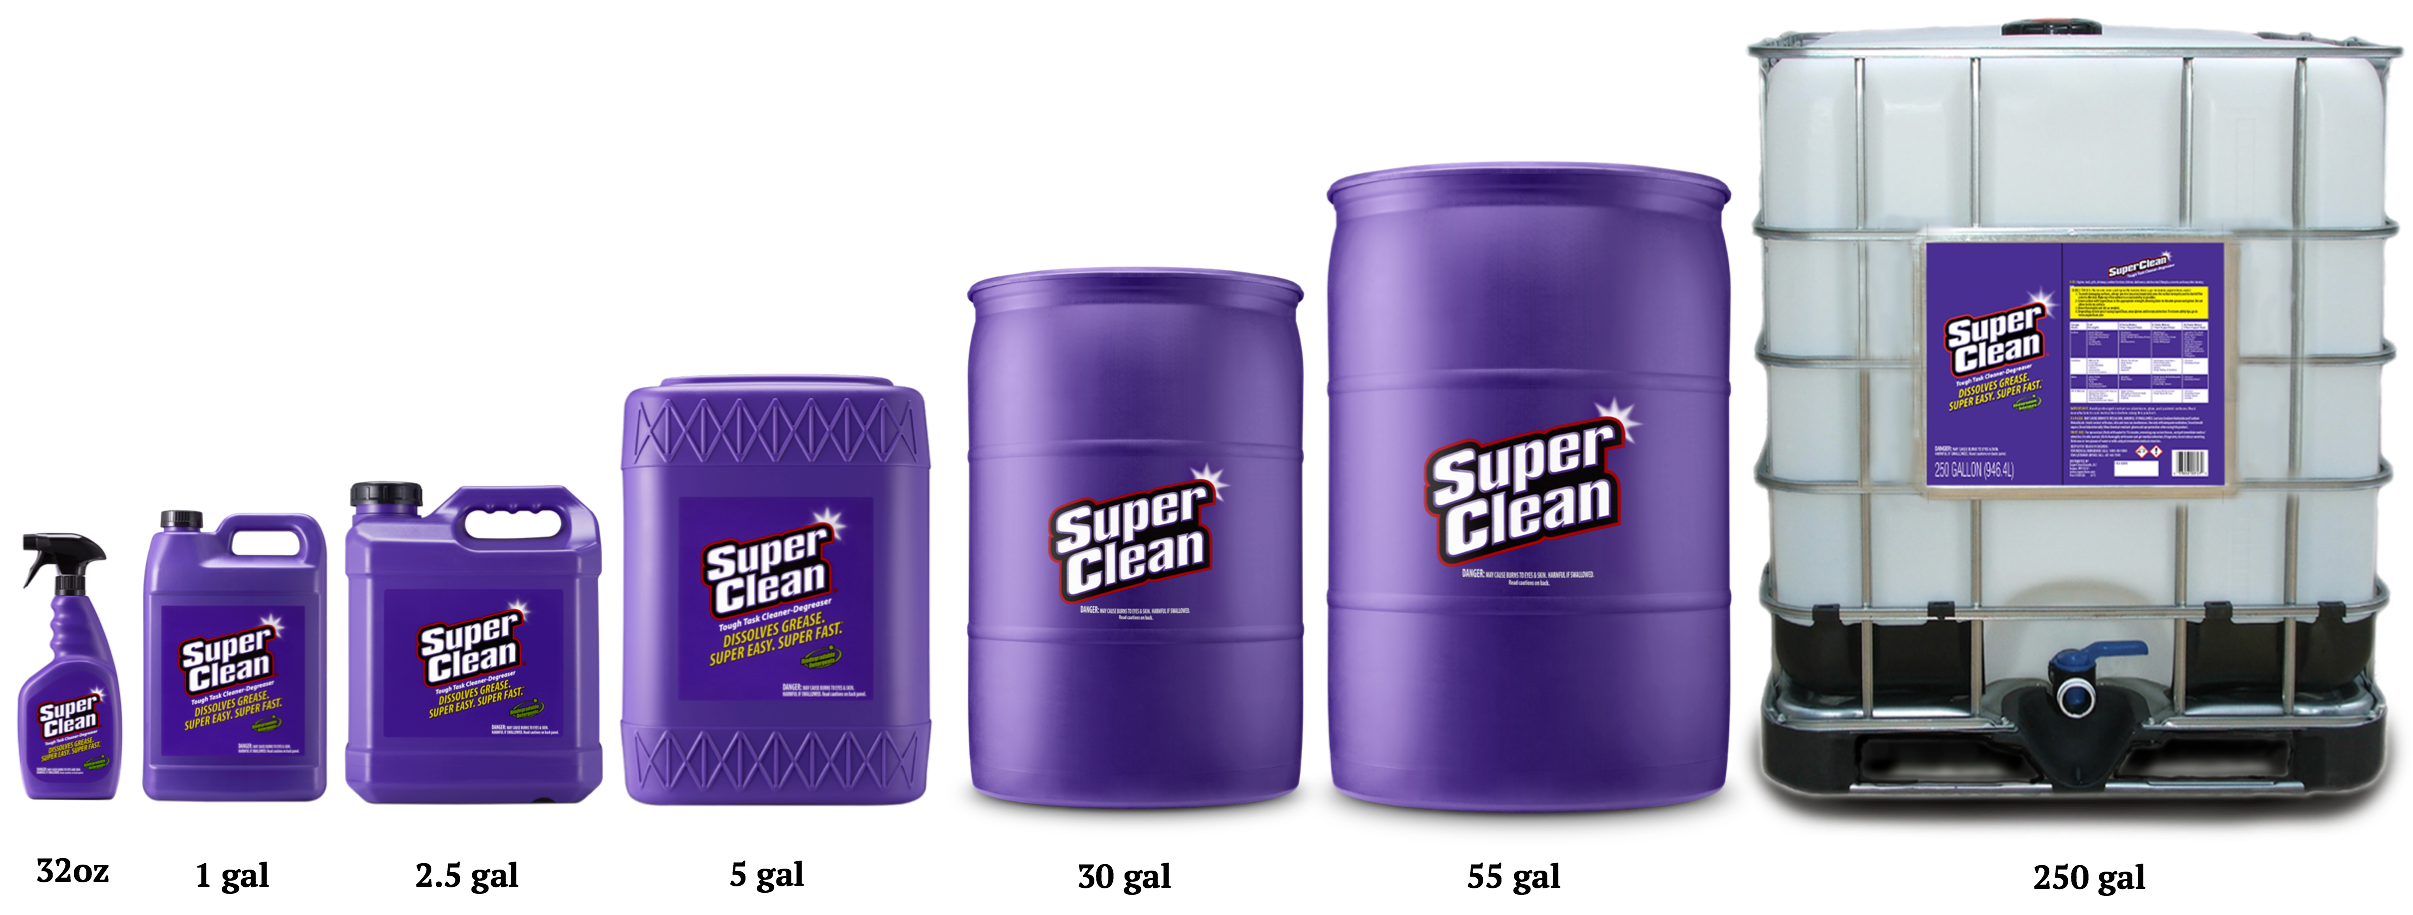 Sizes of Super Clean products from 32 ounces to 250 gallons